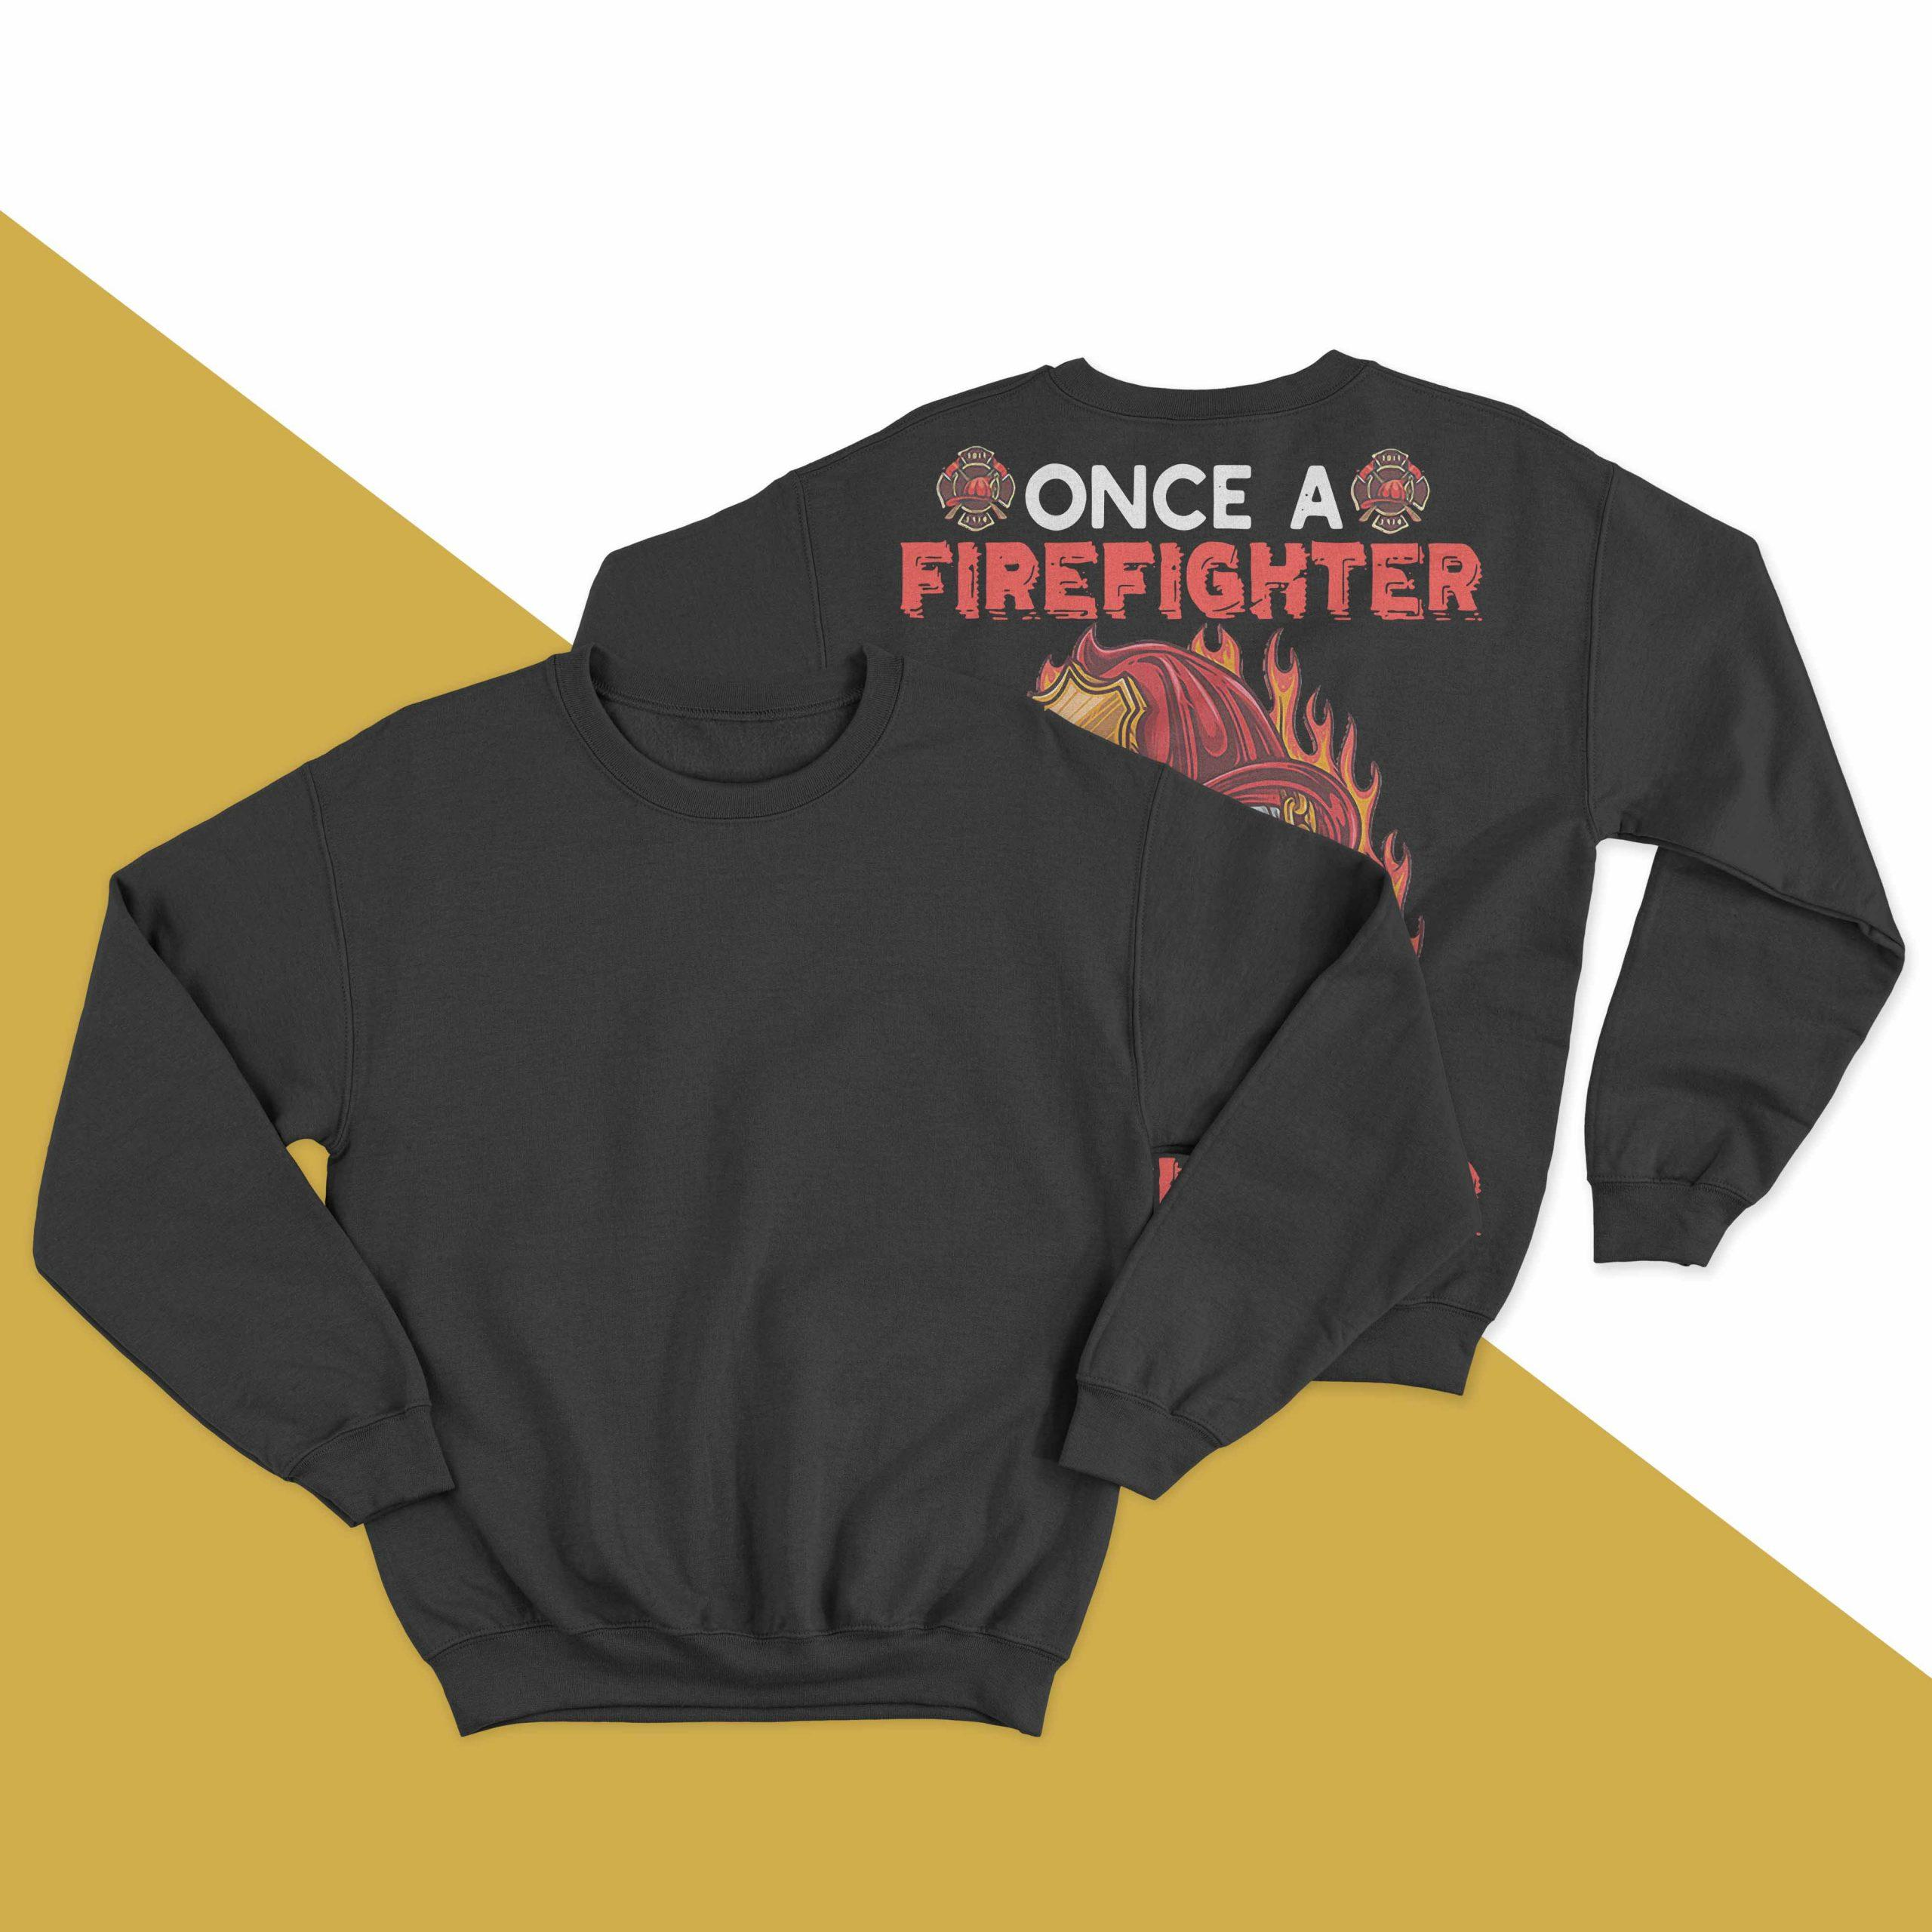 Once A Firefighter Always A Firefighter Longsleeve